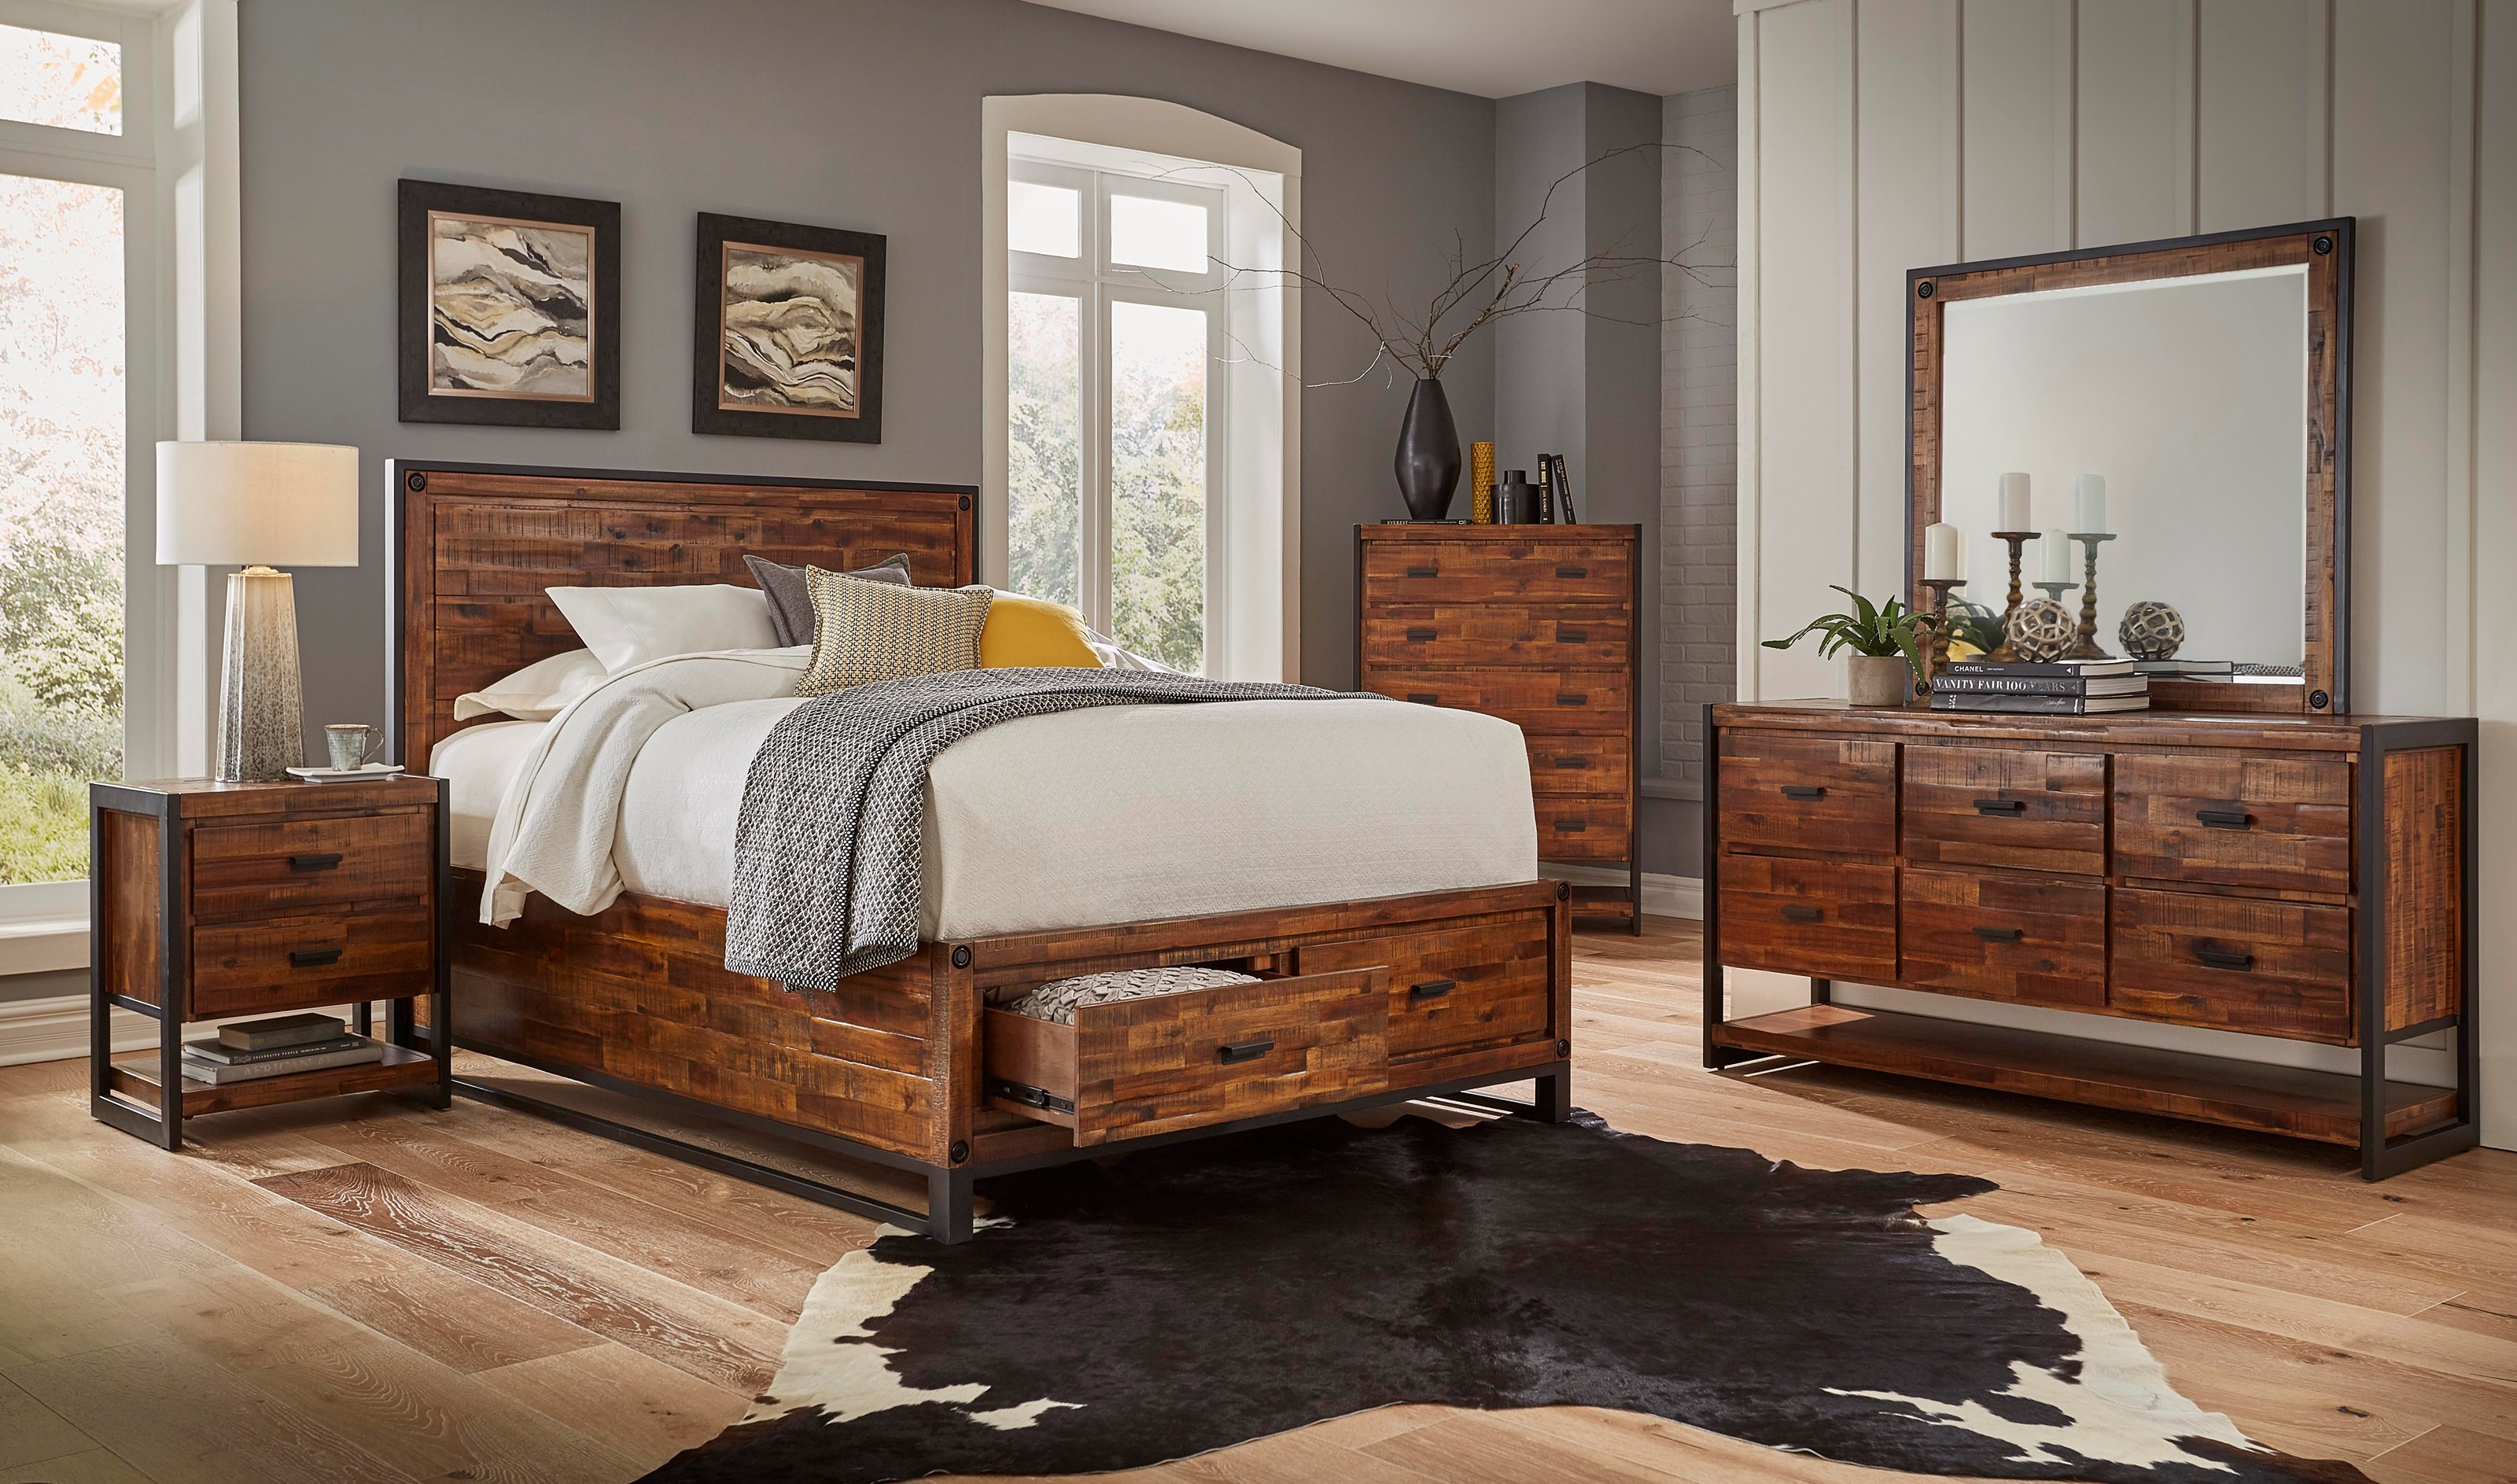 Jofran loftworks queen size bed with 2 storage drawers vandrie home furnishings panel beds Home furniture queen size bed